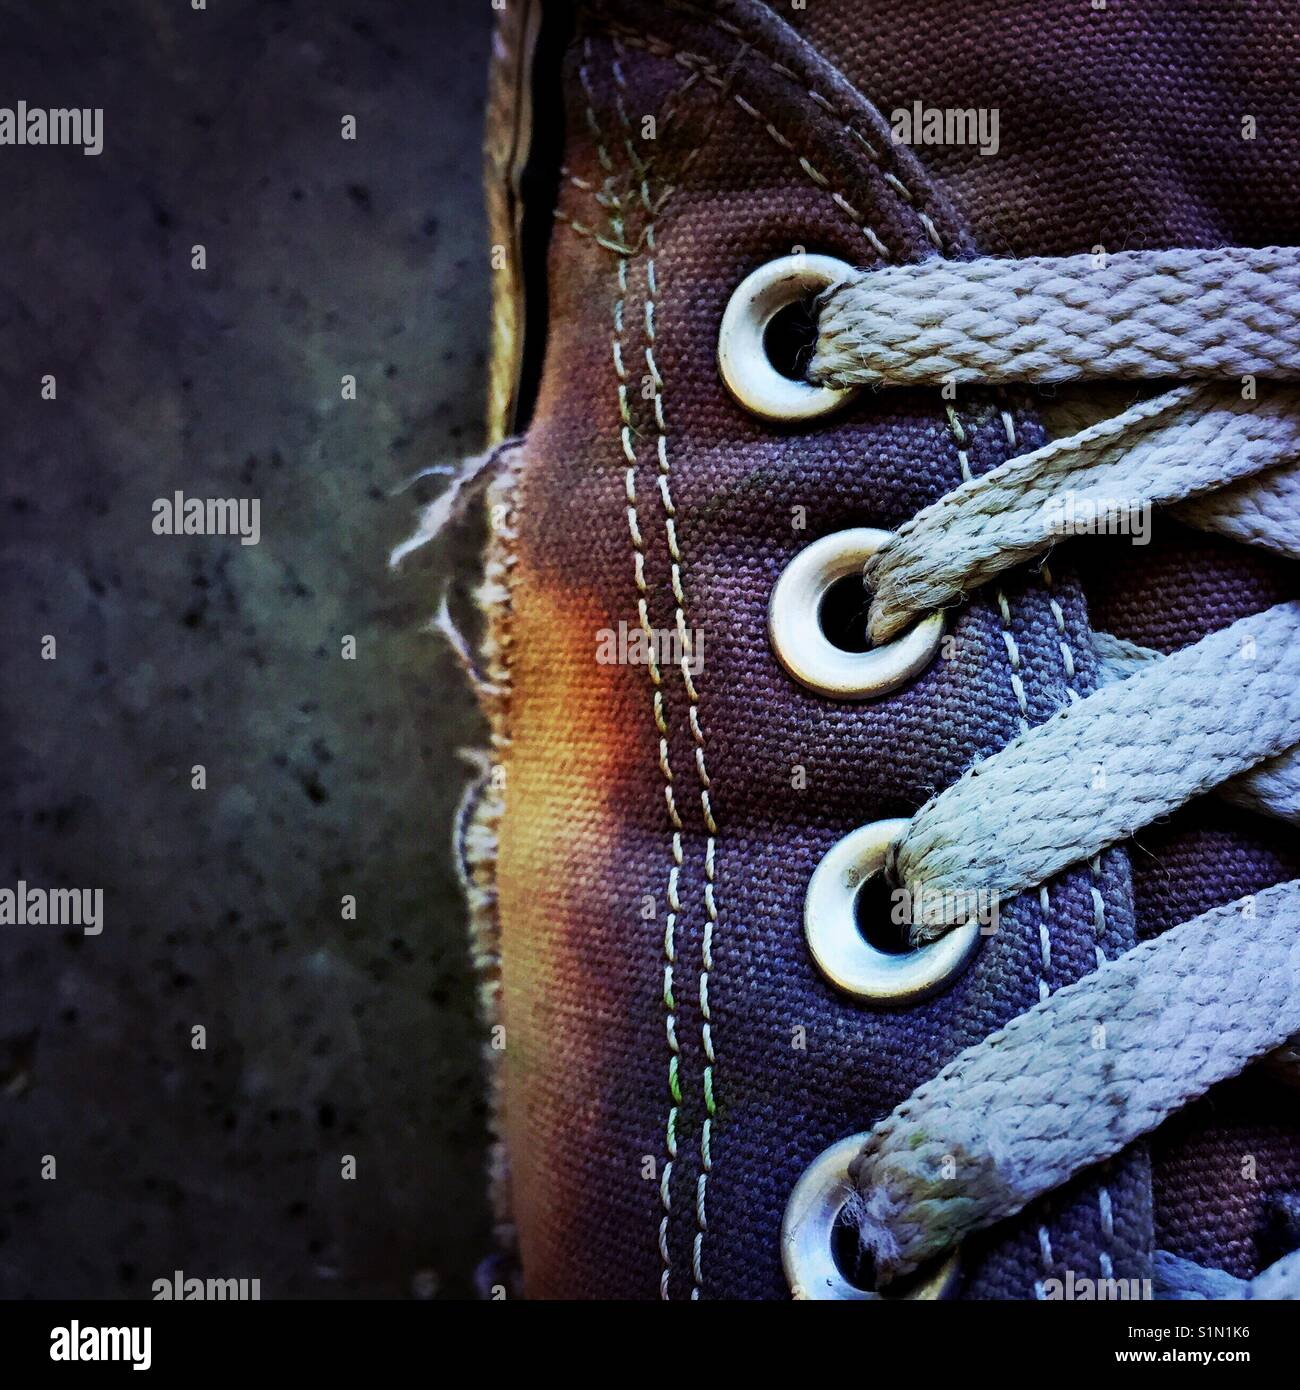 A close-up detail shot of an old worn out canvas shoe - Stock Image